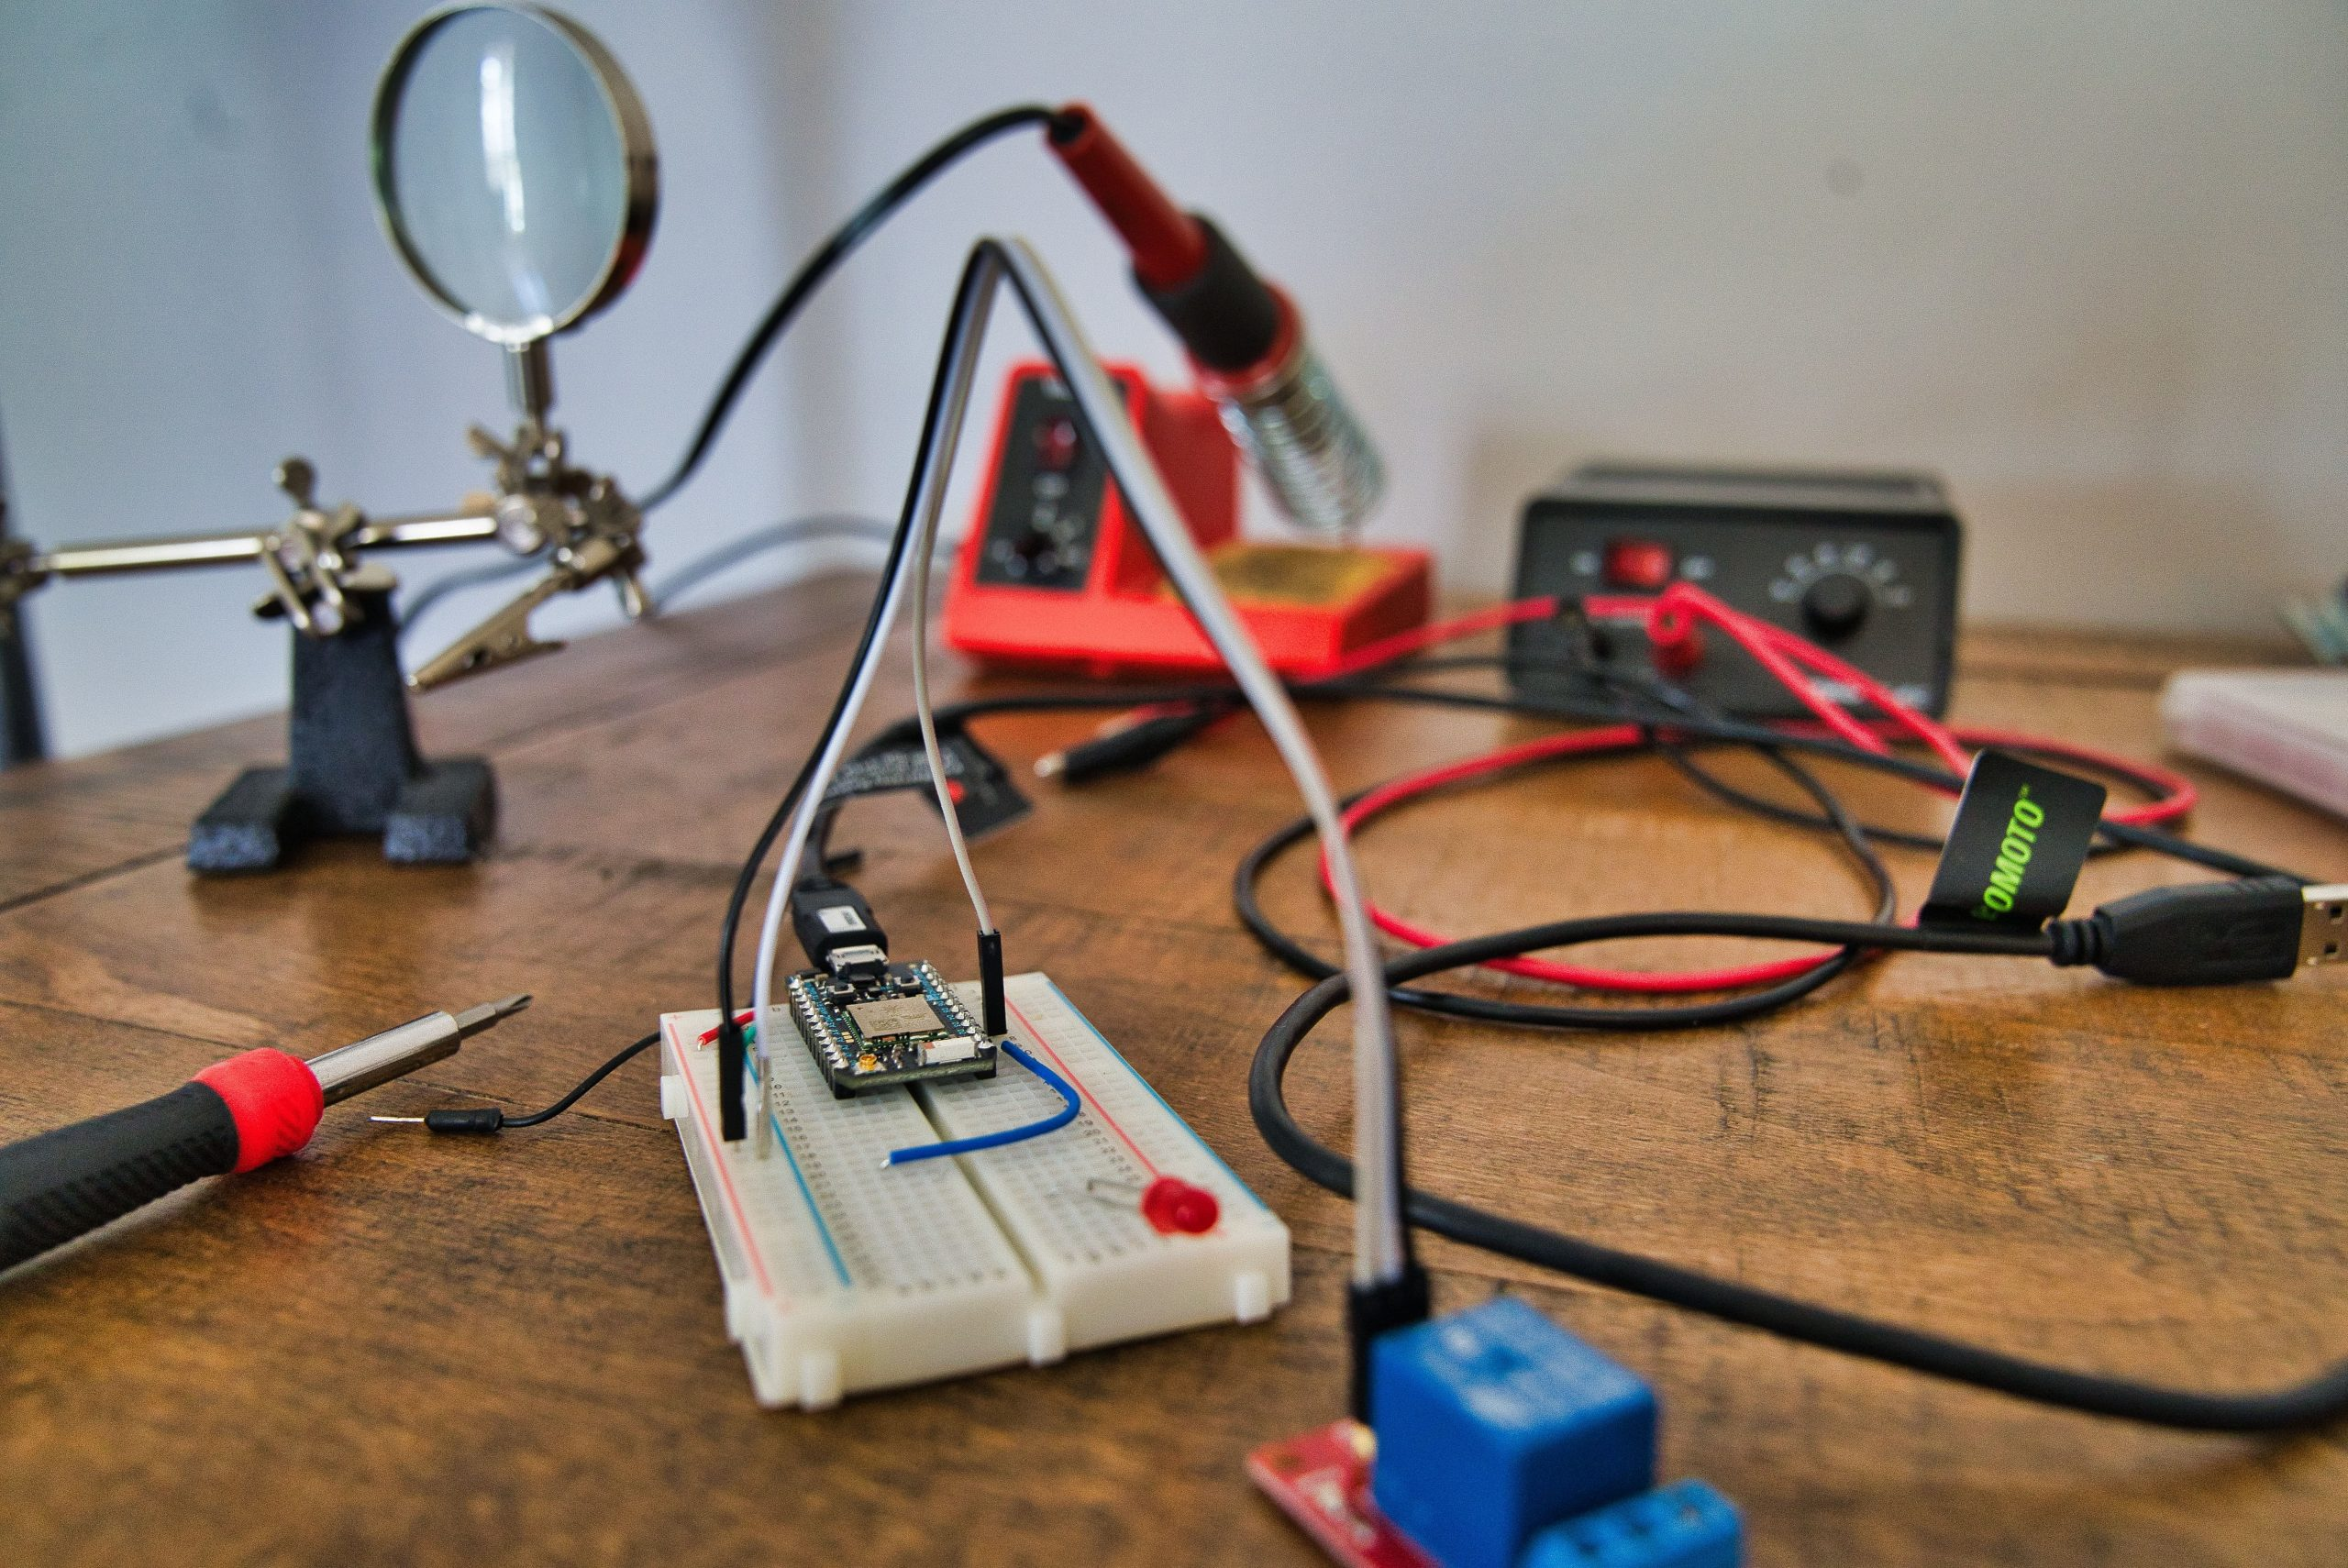 soldering iron and circuit